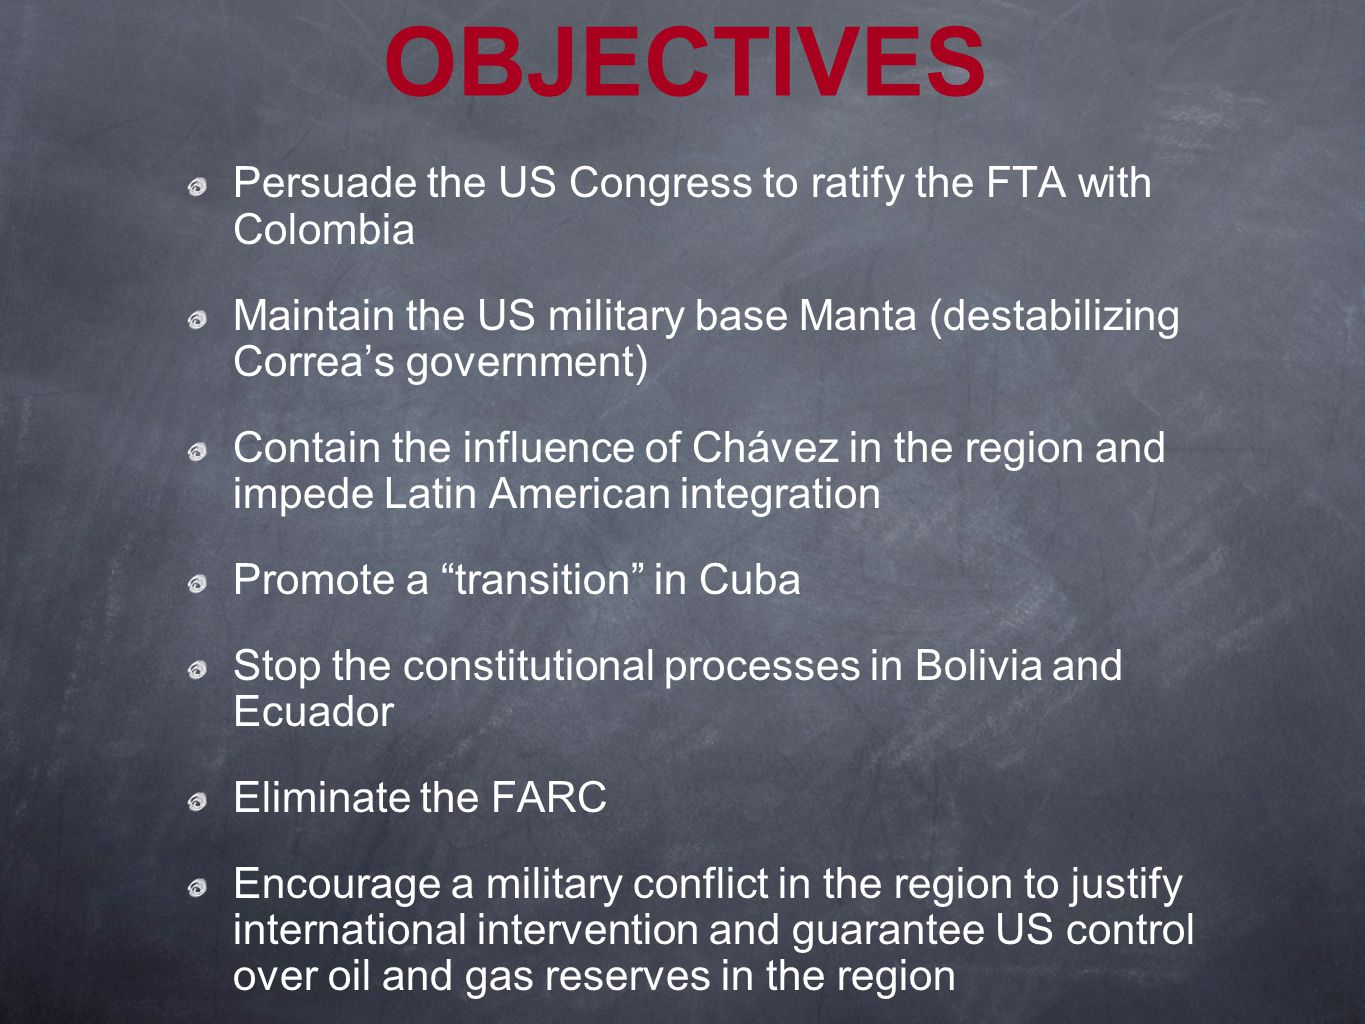 OBJECTIVES Persuade the US Congress to ratify the FTA with Colombia Maintain the US military base Manta (destabilizing Correa's government) Contain the influence of Chávez in the region and impede Latin American integration Promote a transition in Cuba Stop the constitutional processes in Bolivia and Ecuador Eliminate the FARC Encourage a military conflict in the region to justify international intervention and guarantee US control over oil and gas reserves in the region